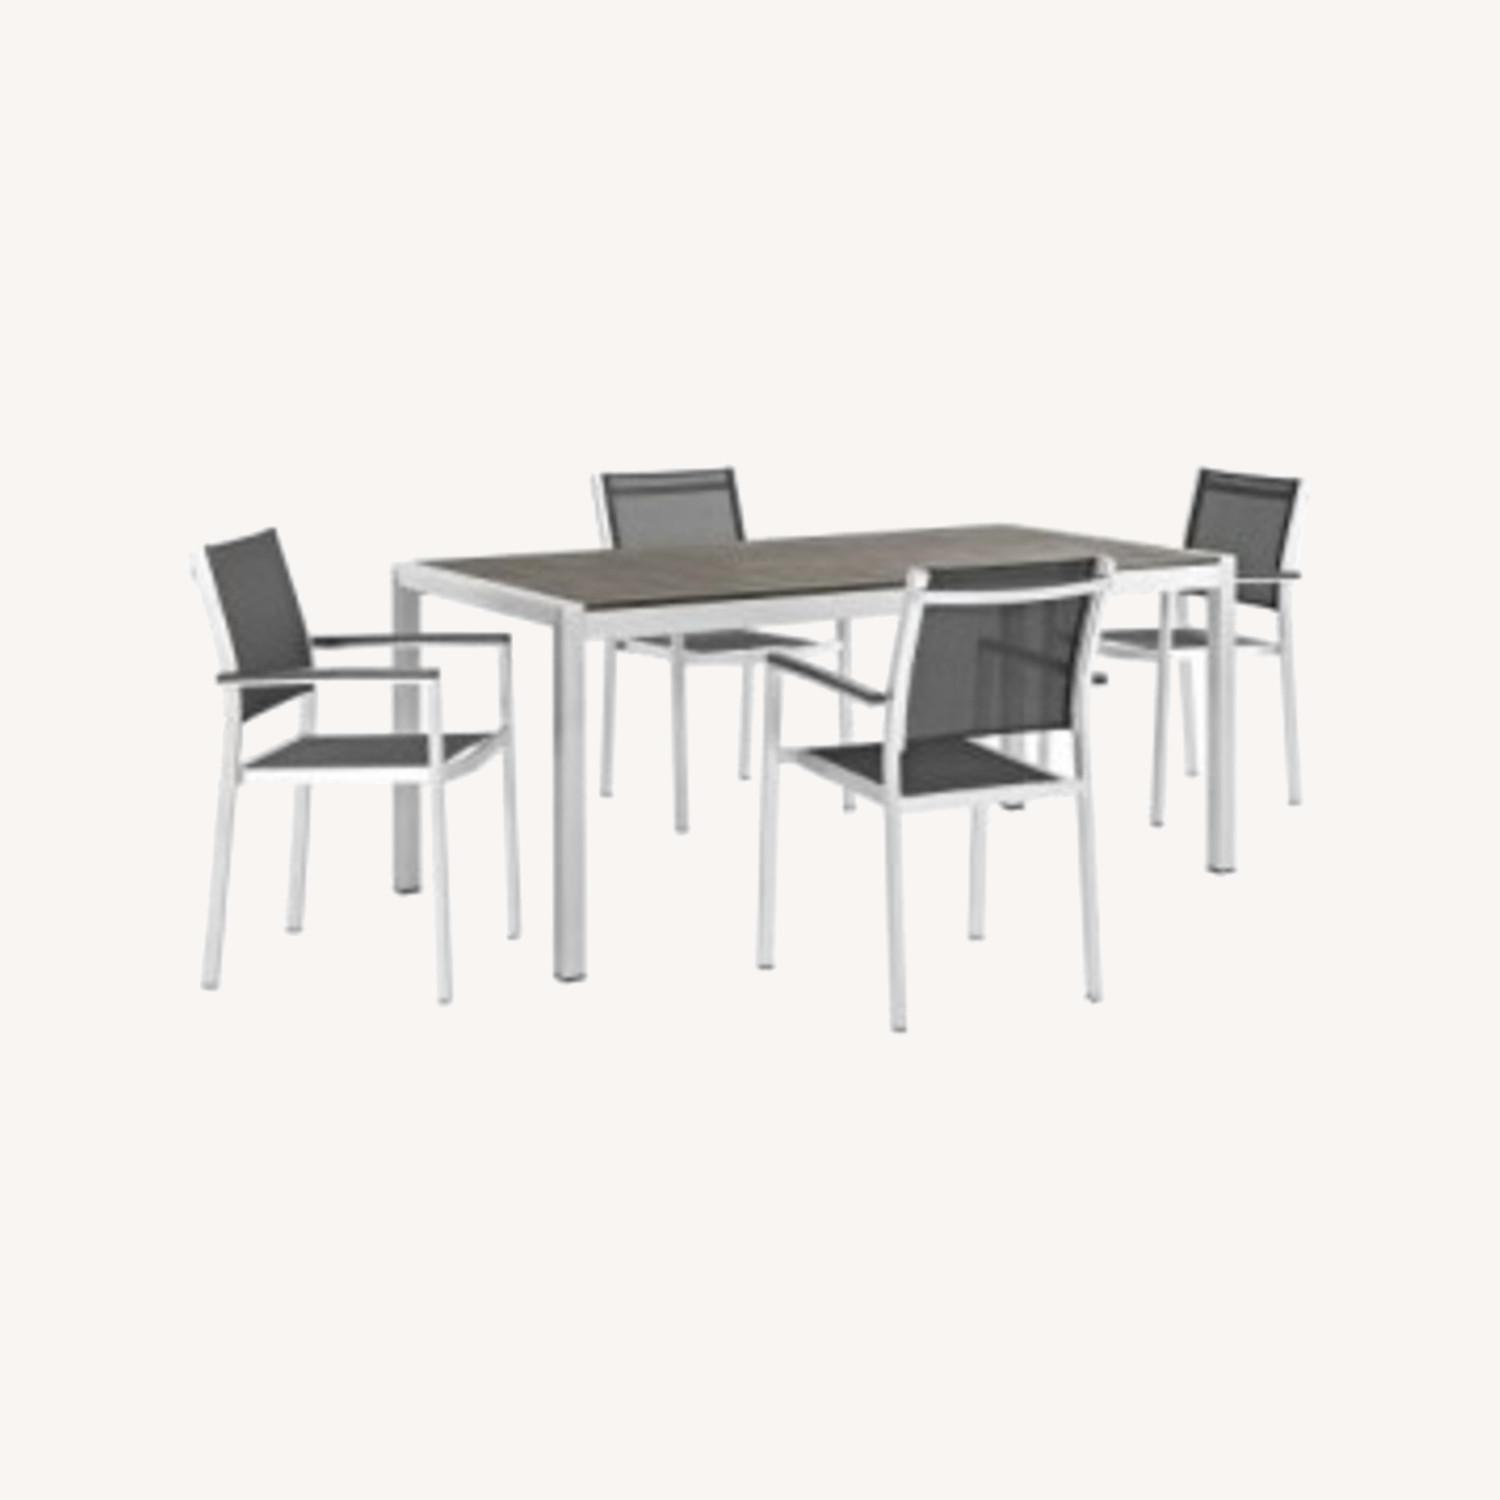 5-Piece Dining Set In Black Plastic Wood Accent - image-7